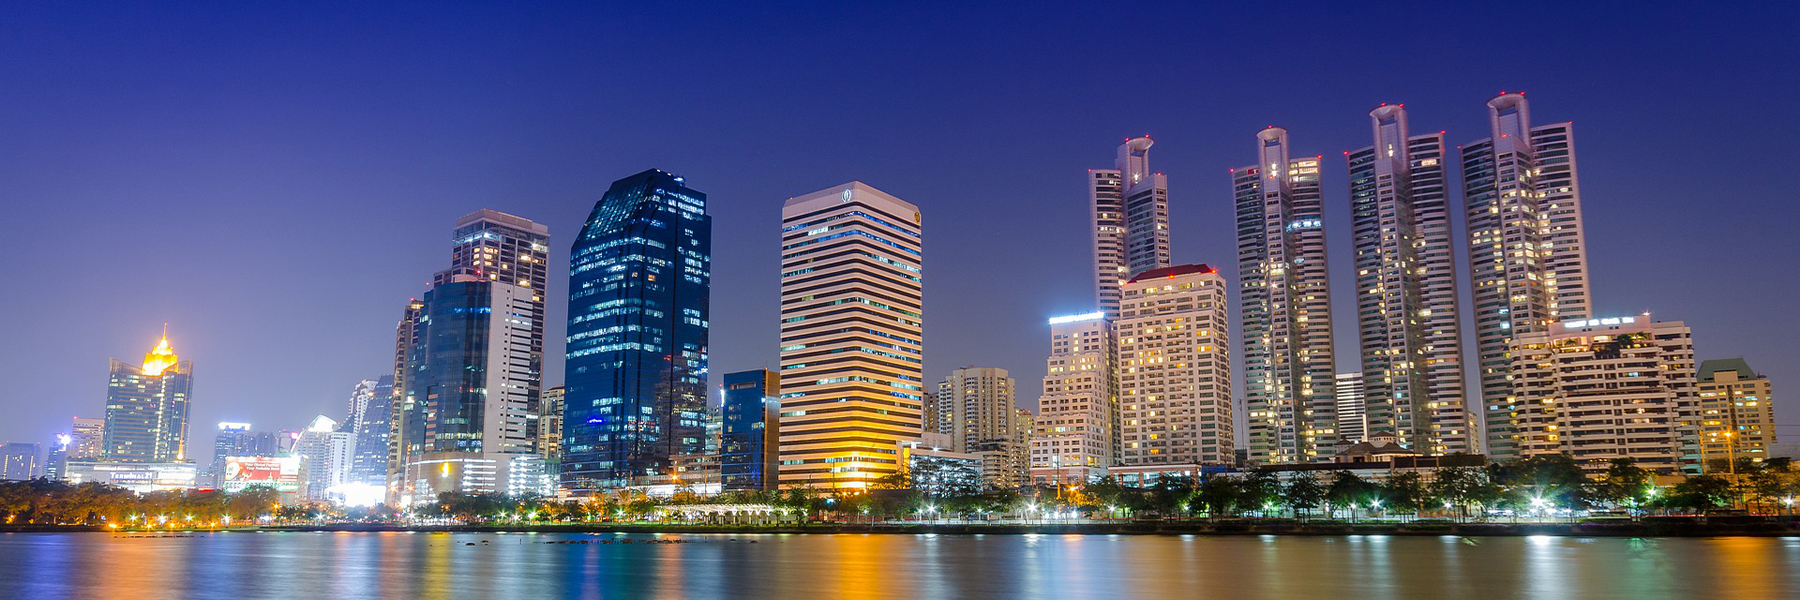 Buy Real Estate in Thailand with List Sotheby's International Realty Thailand